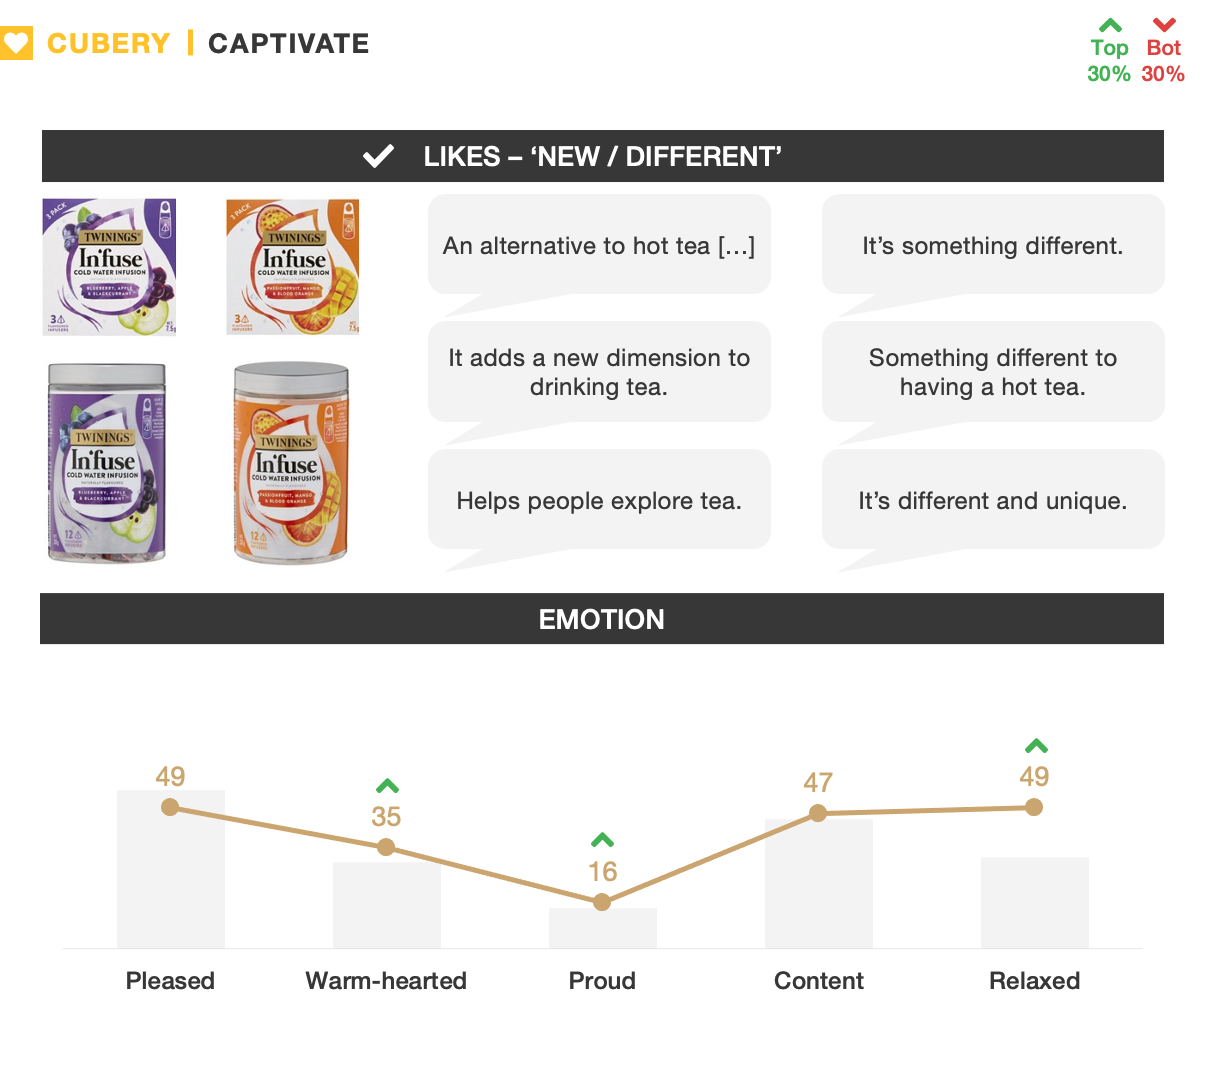 Twinings In'fuse Tea - New Product Innovation - Captivate